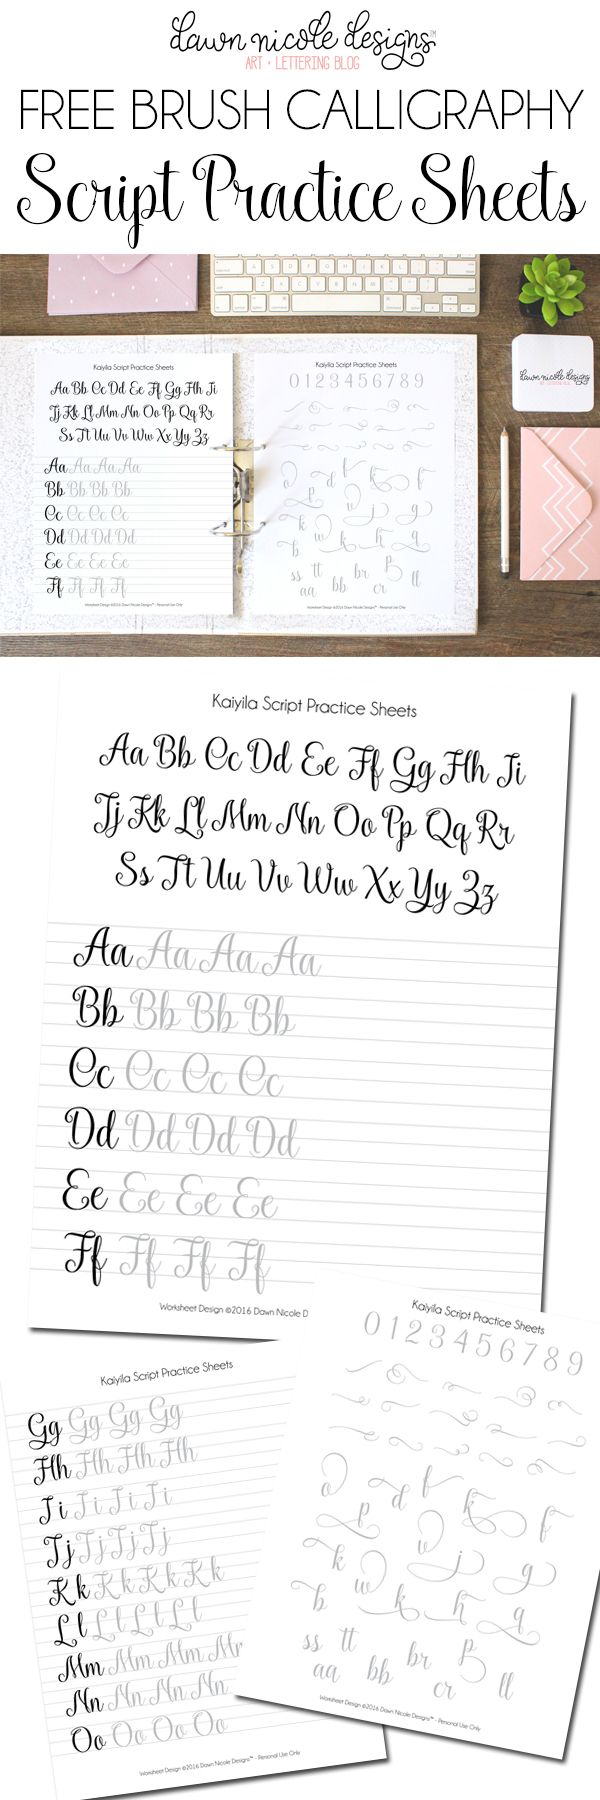 worksheet Z Score Practice Worksheet 1000 ideas about handwriting practice sheets on pinterest free script brush calligraphy worksheets dawnnicoledesigns com